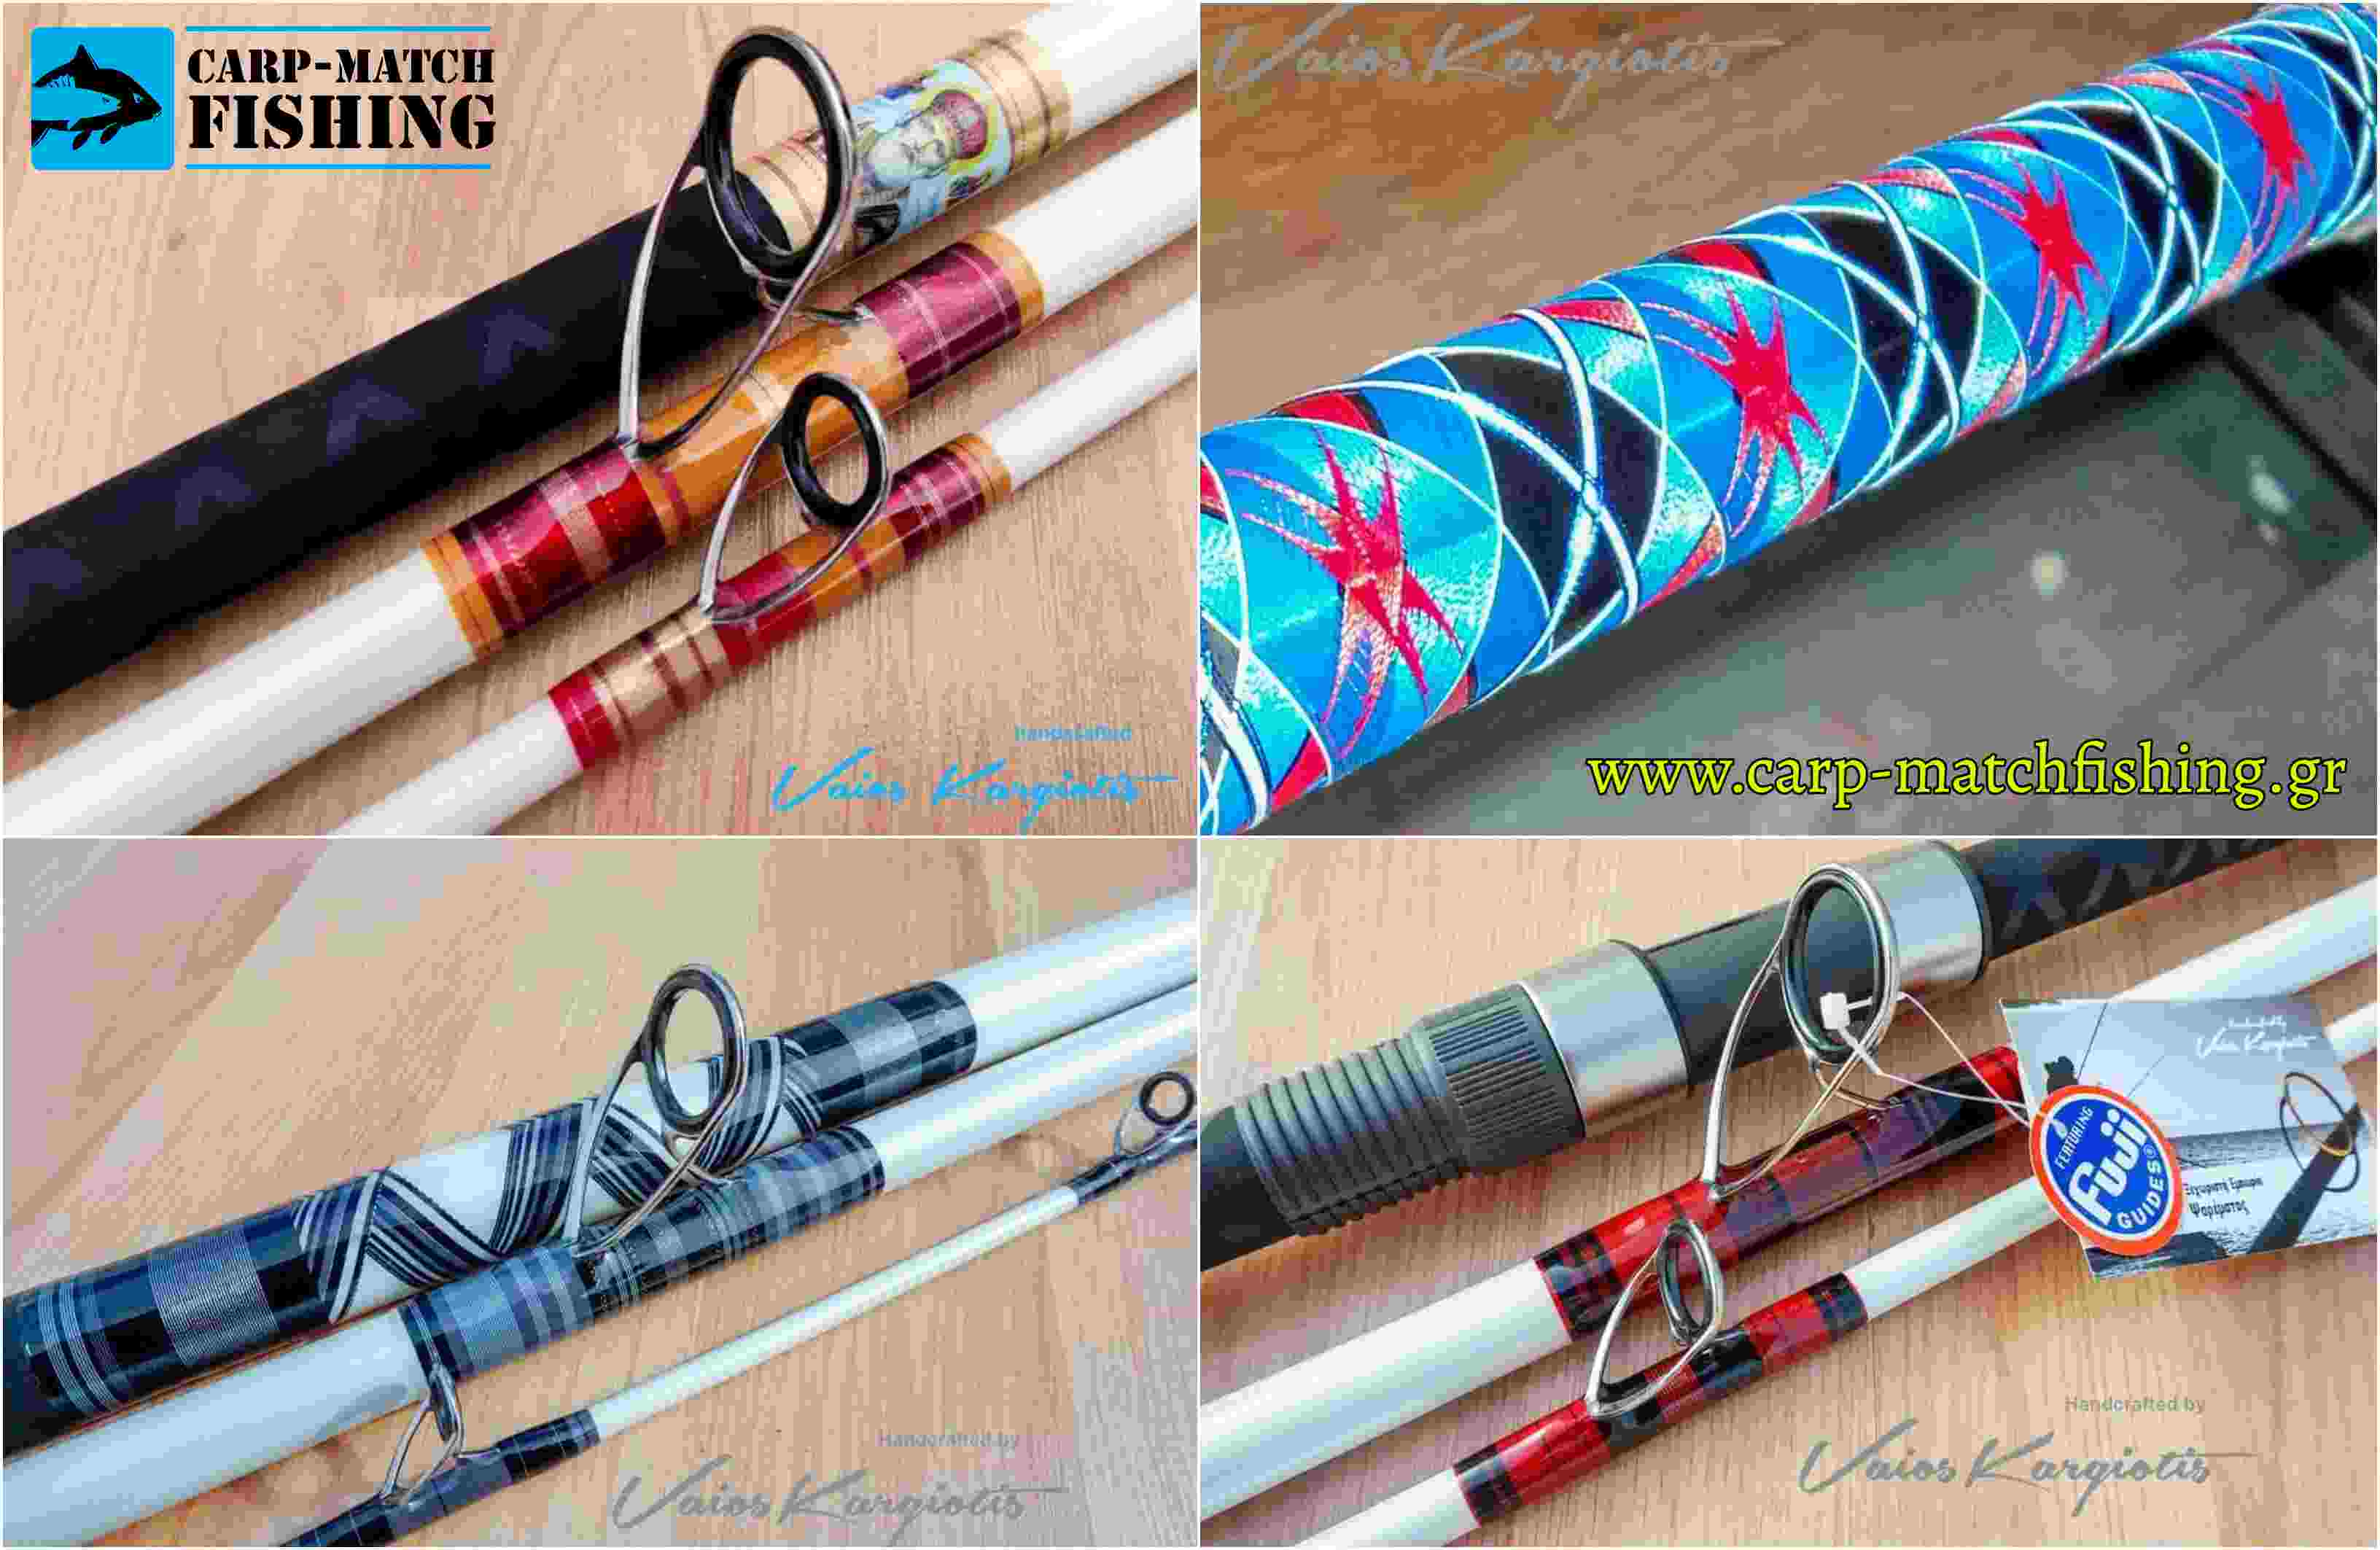 blanks 1 rodbuilding vaios kargiotis cross wrap carpmatchfishing